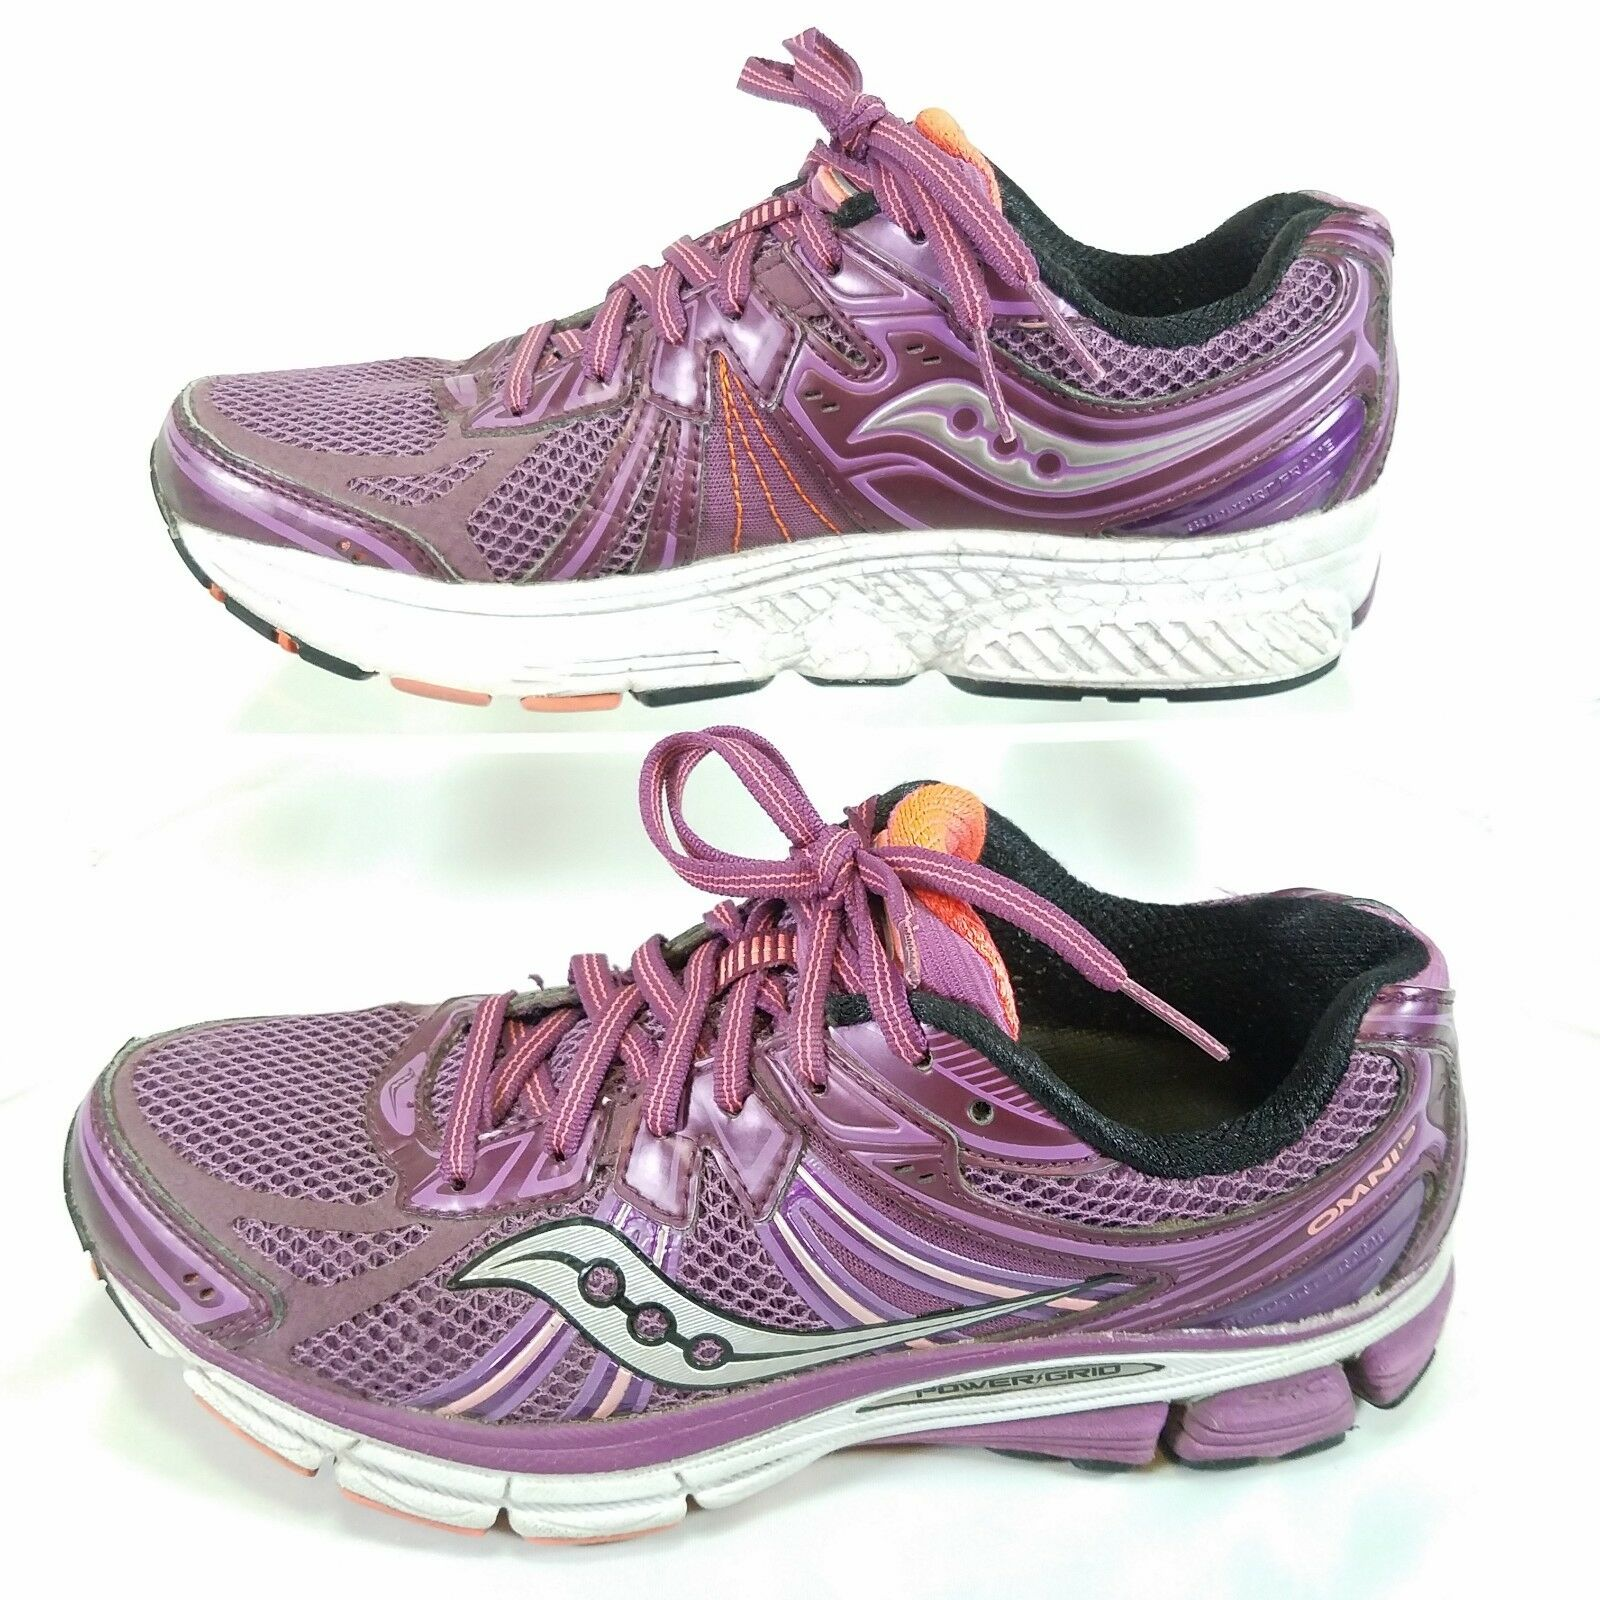 Women's Saucony Omni 13 Running shoes Size 7.5 US Purple Power Grid workout Q10